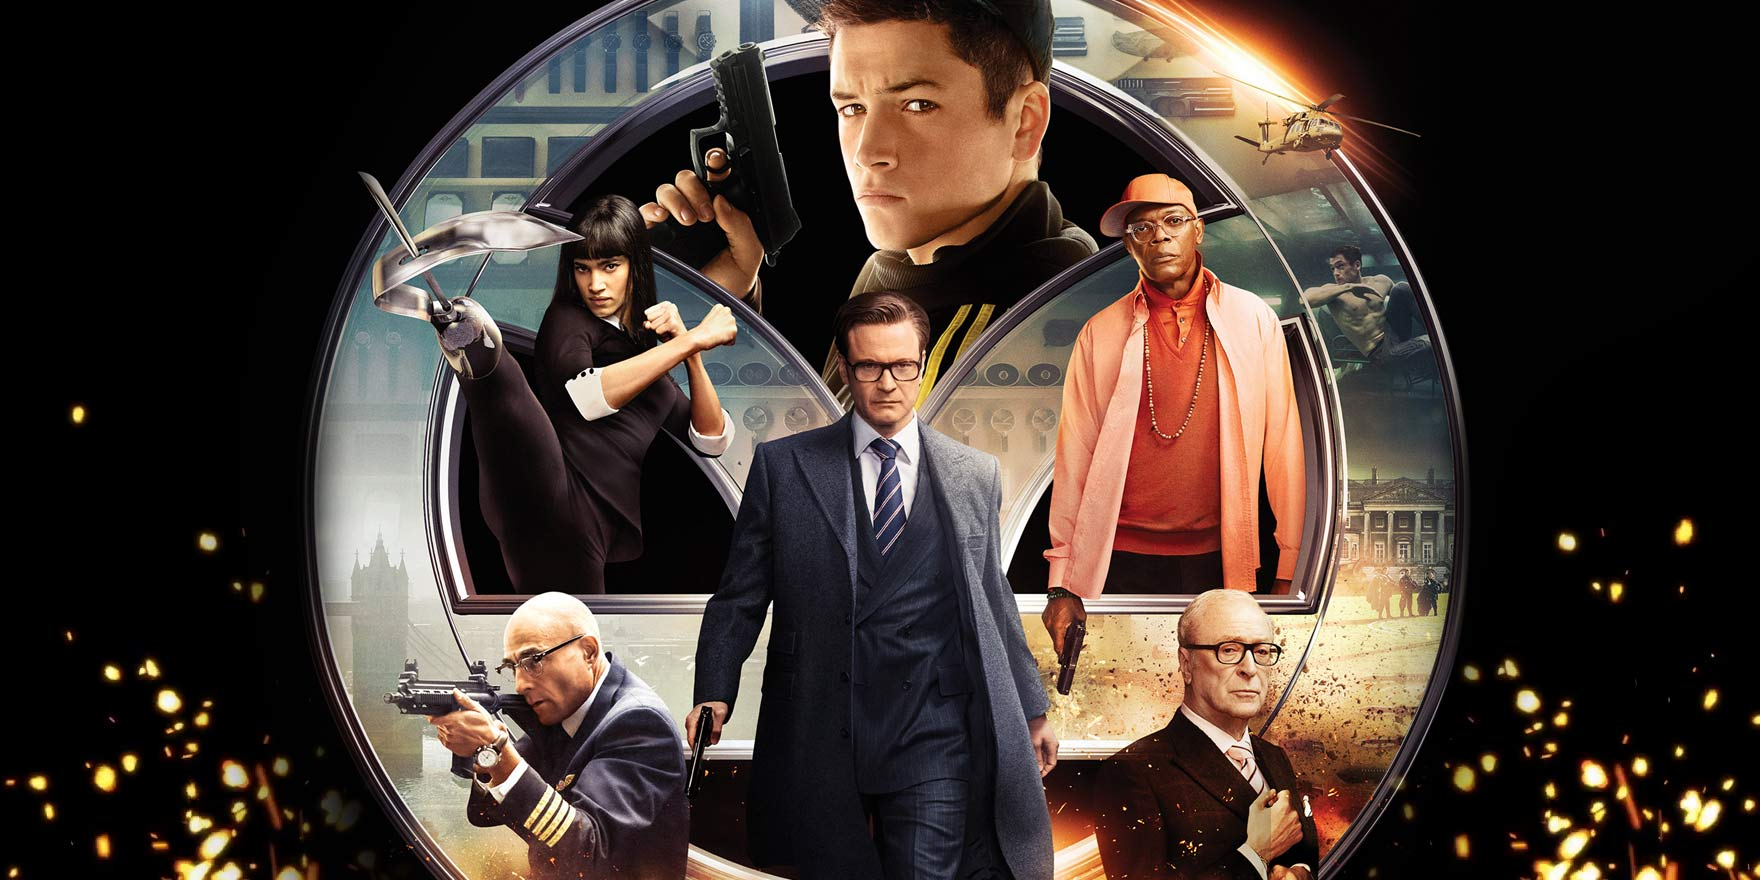 Kingsman: The Secret Service - Header Image